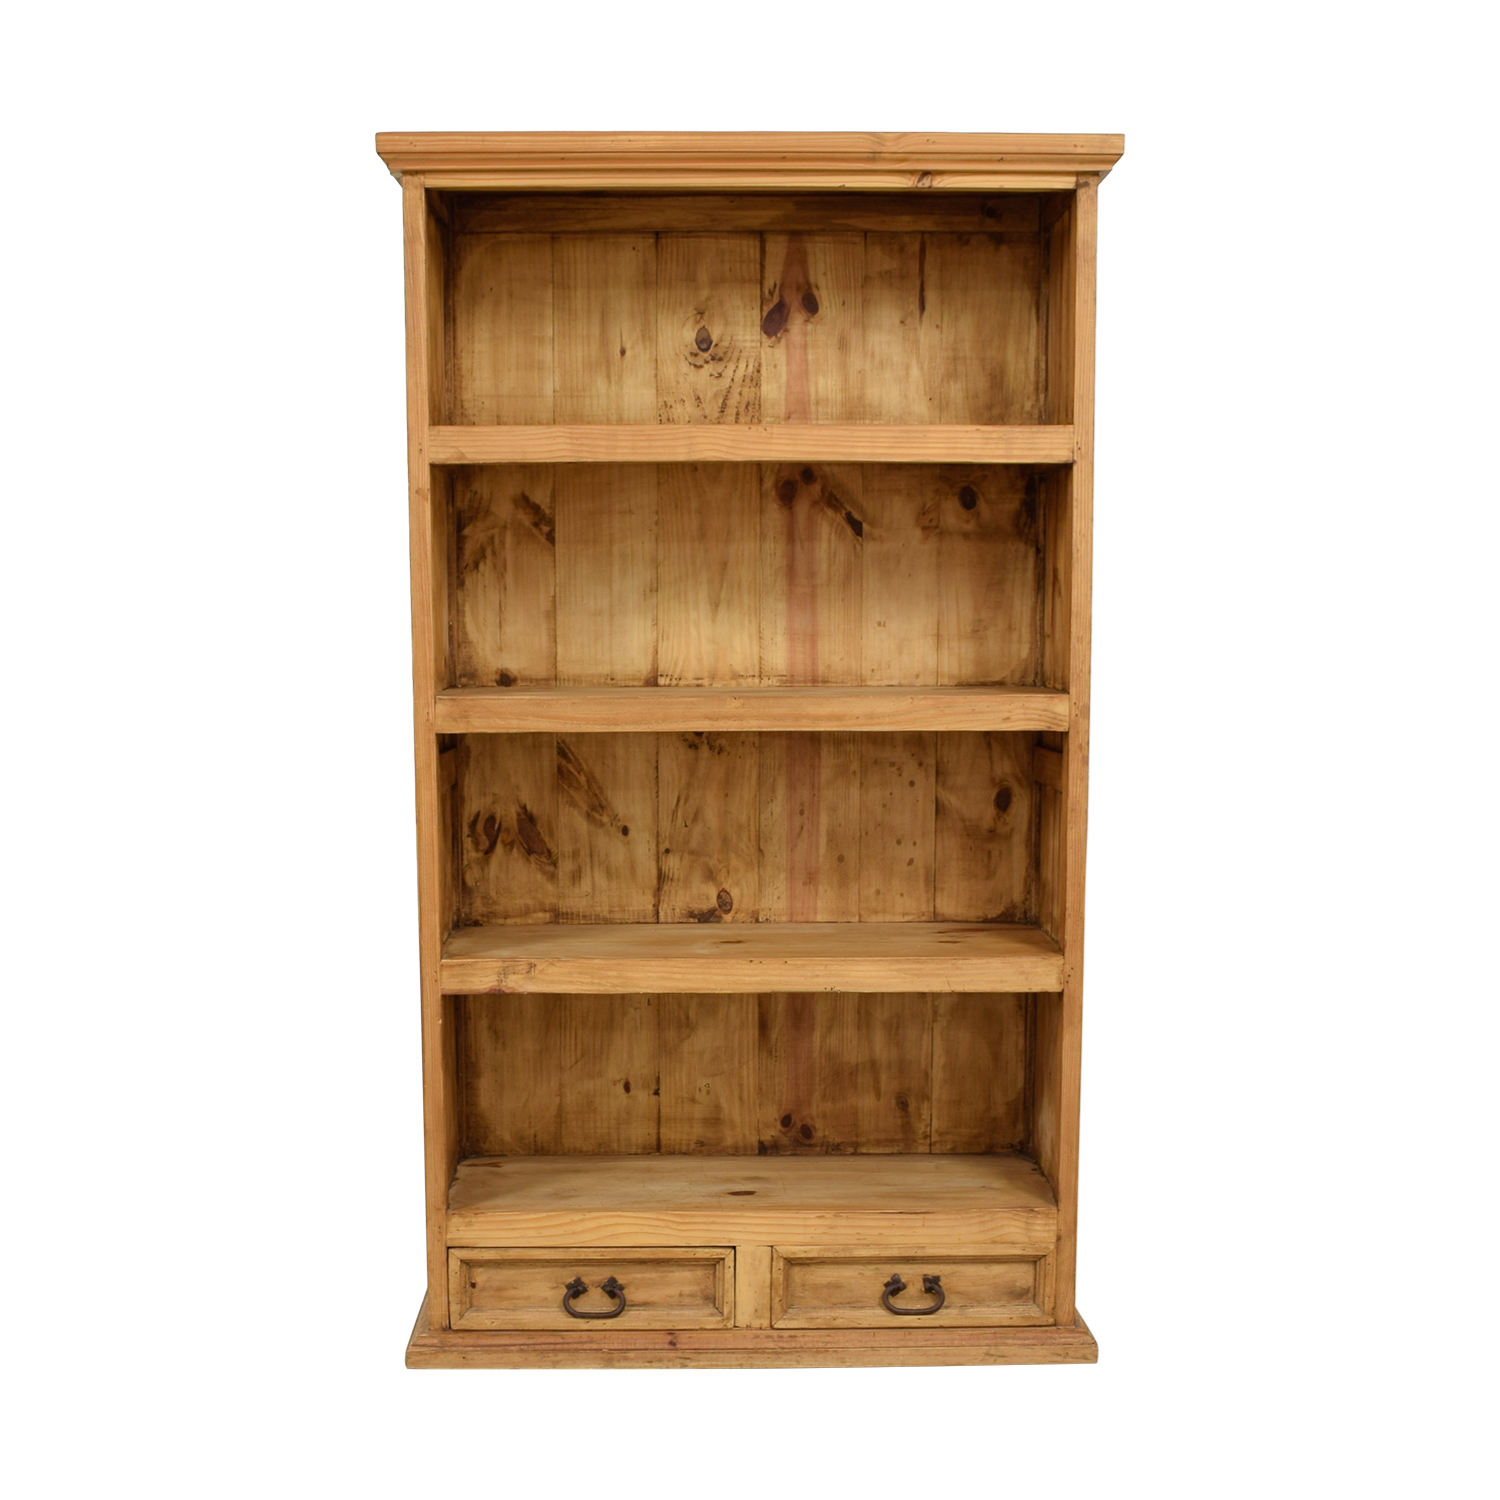 shop Natural Rustic Wood Bookshelf with Two-Drawers  Bookcases & Shelving